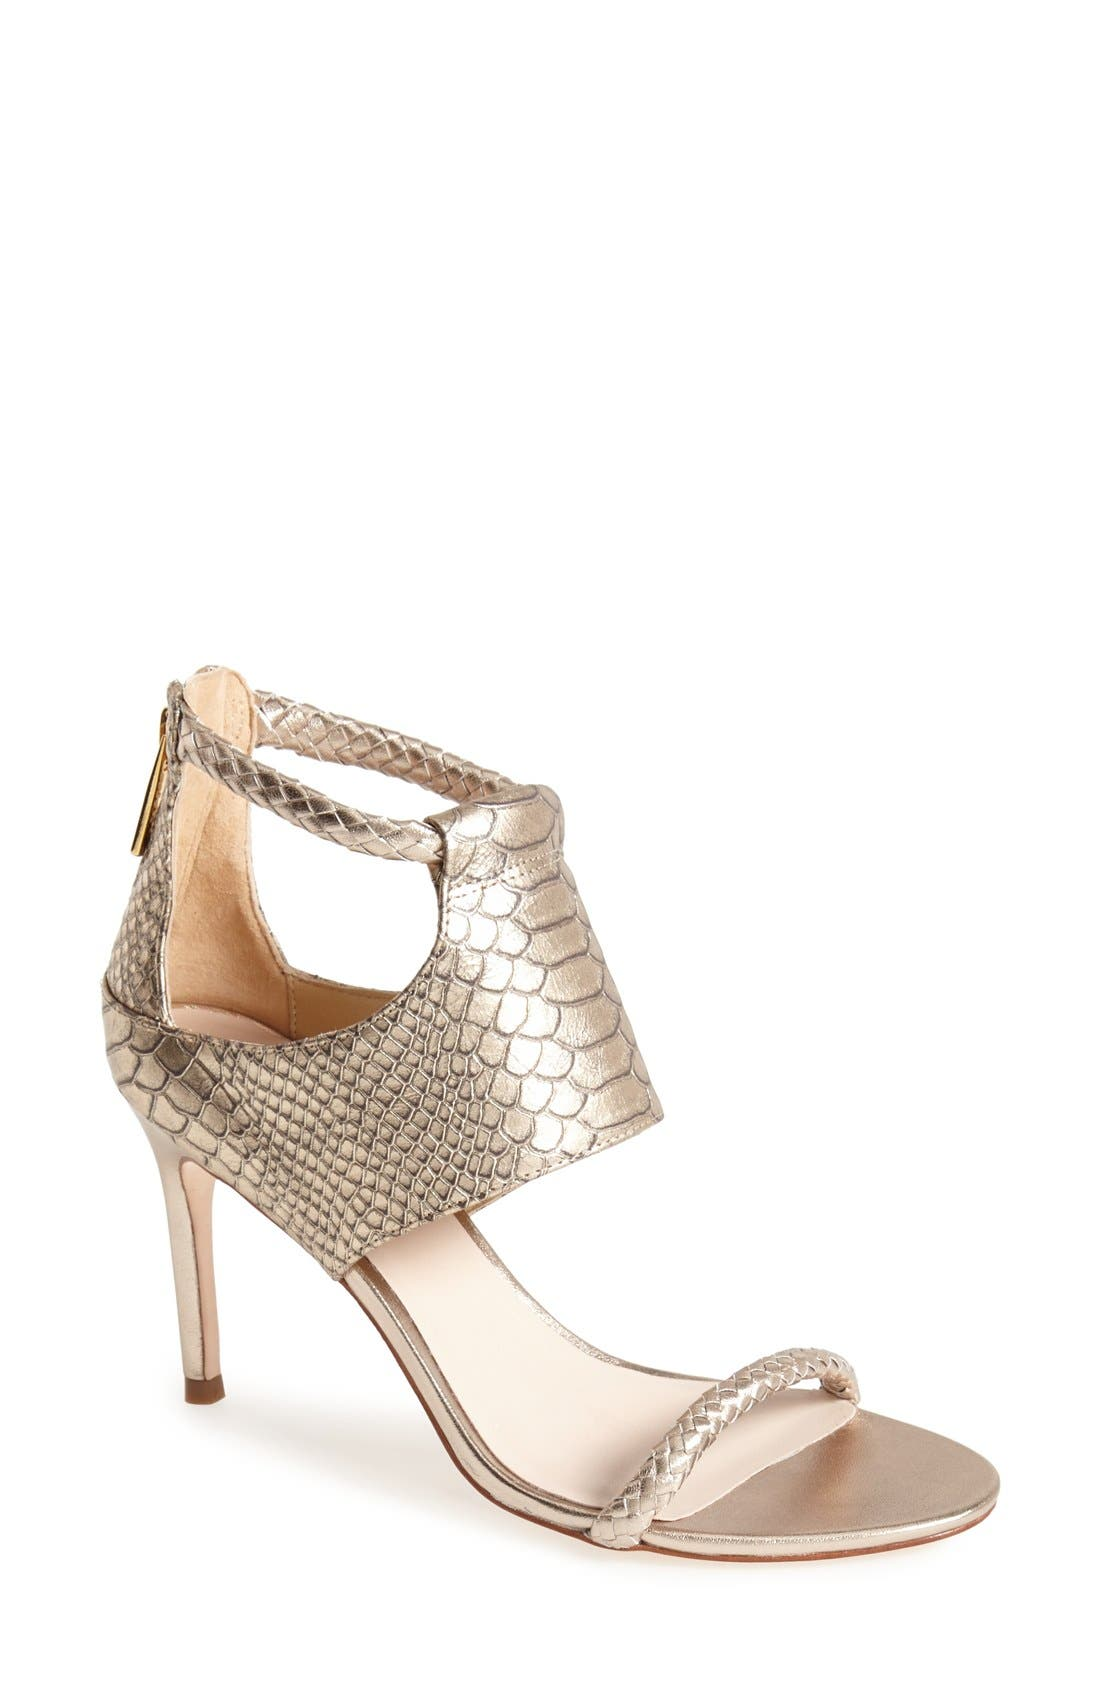 Main Image - Cole Haan 'Lise' Ankle Cuff Sandal (Women)